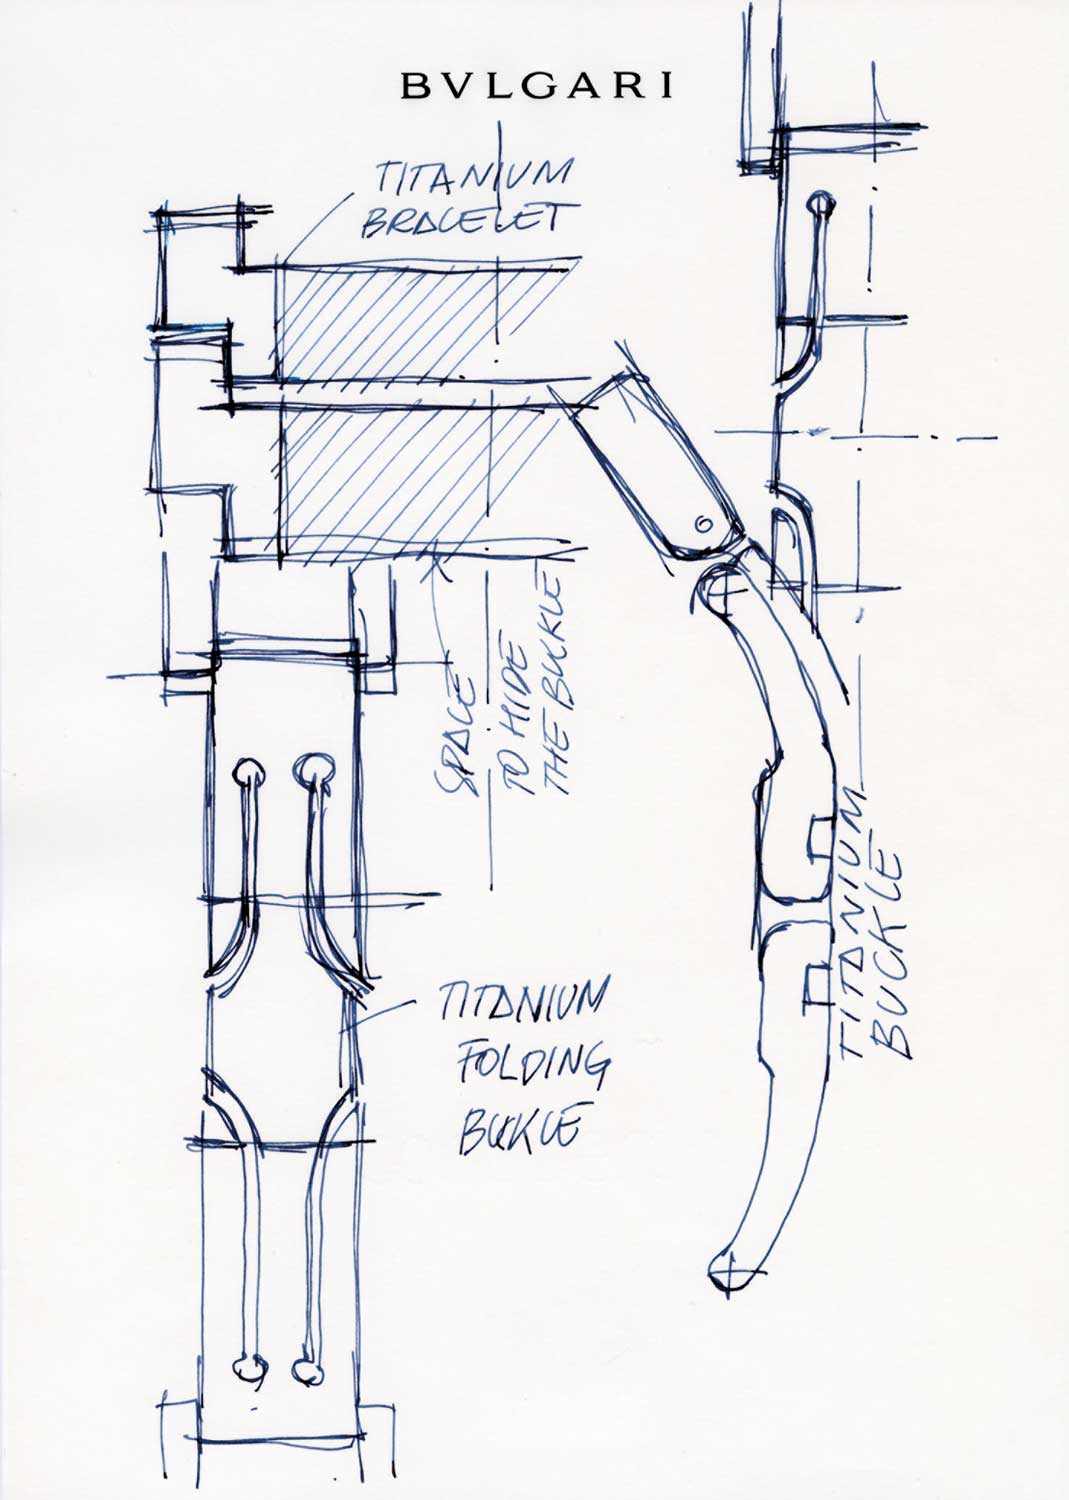 Drawings showing the conception of the Octo Finissimo's bracelet clasp